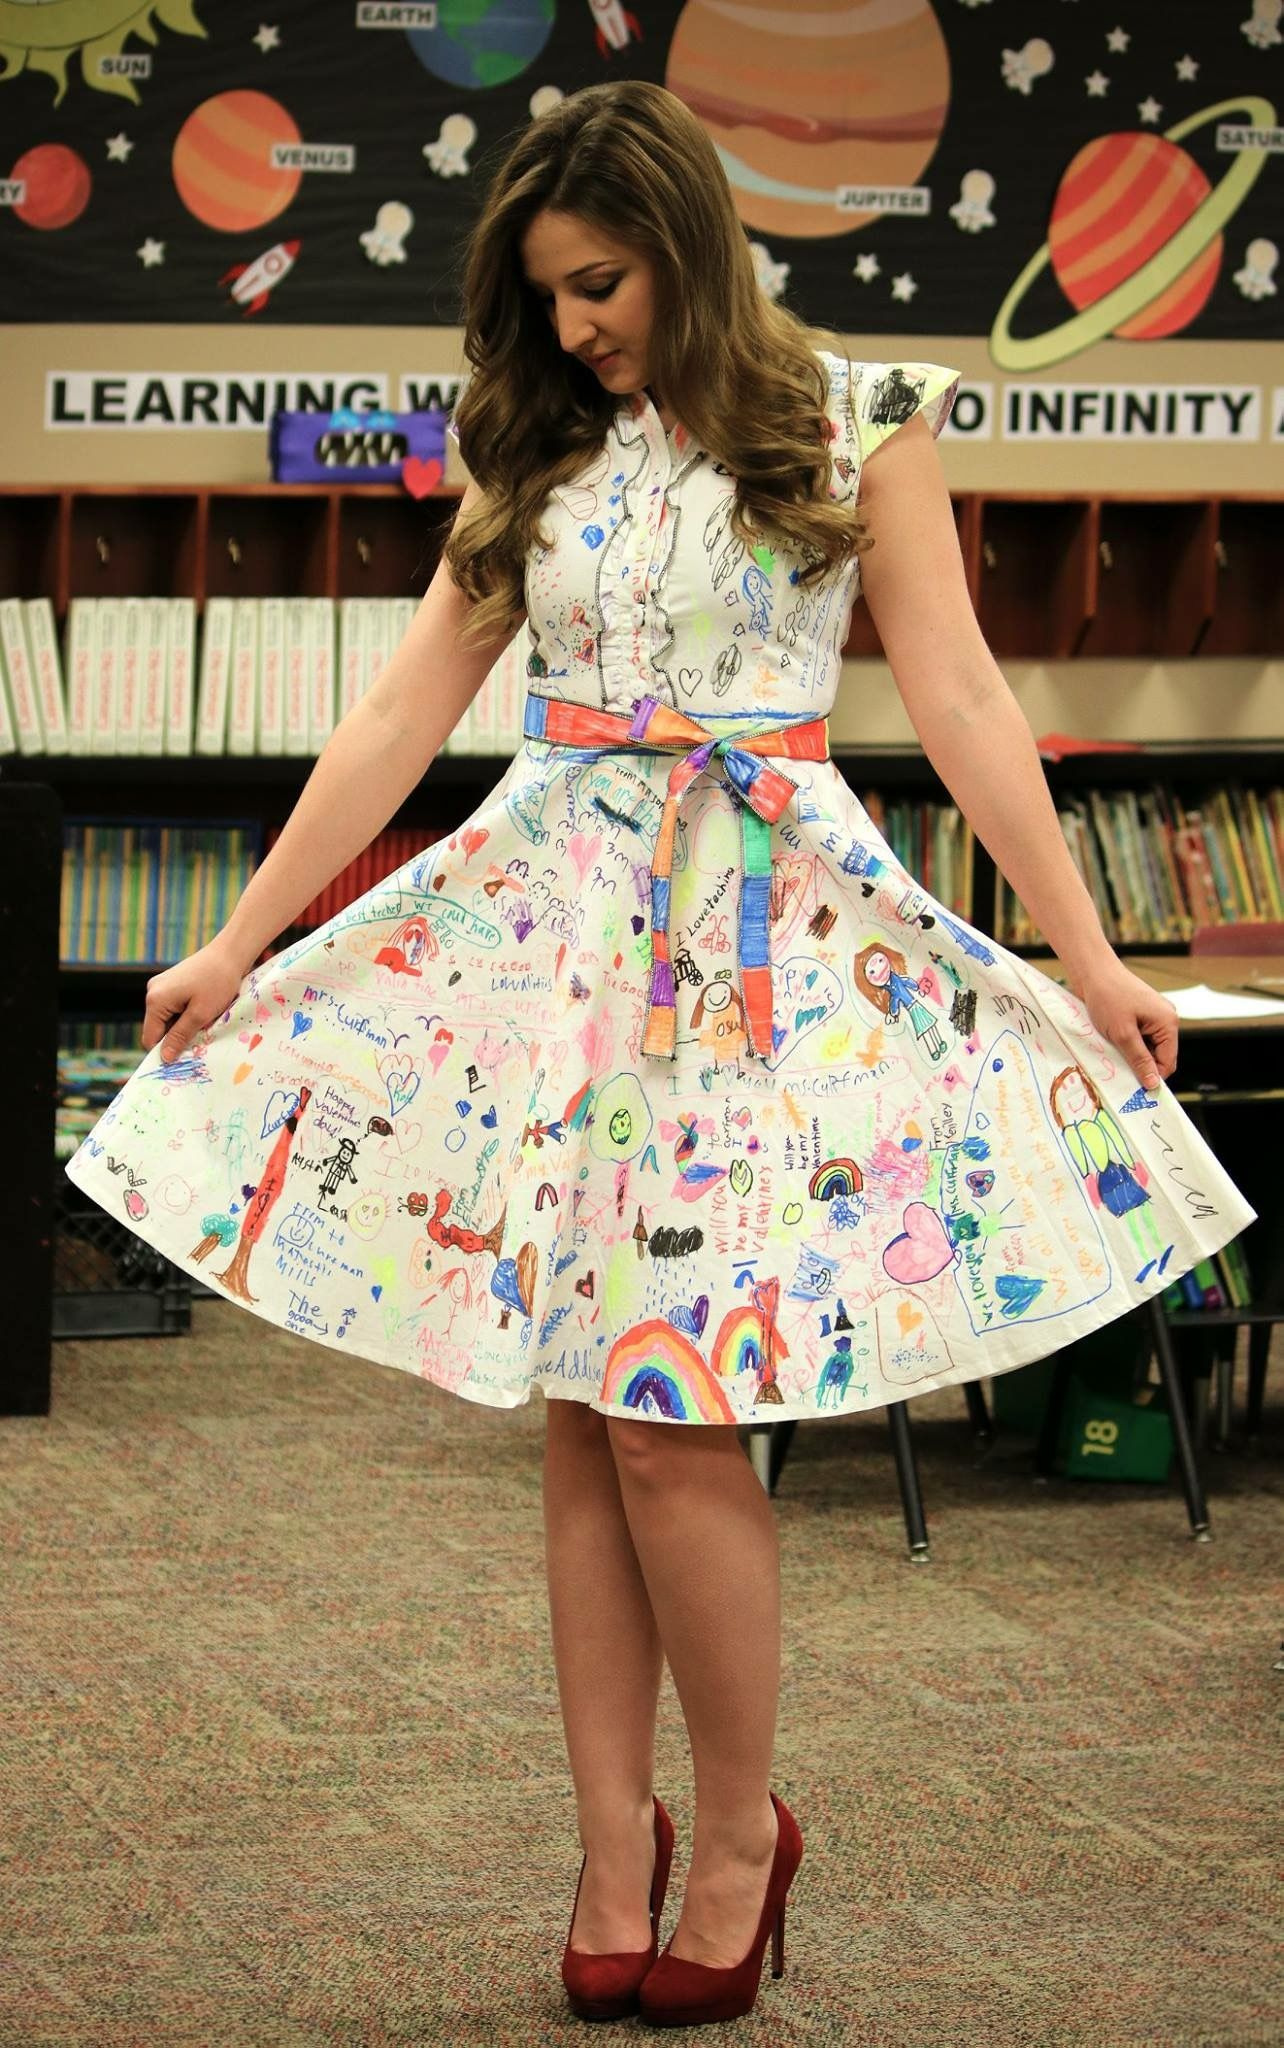 Bring in white dress for students to decorate on first day